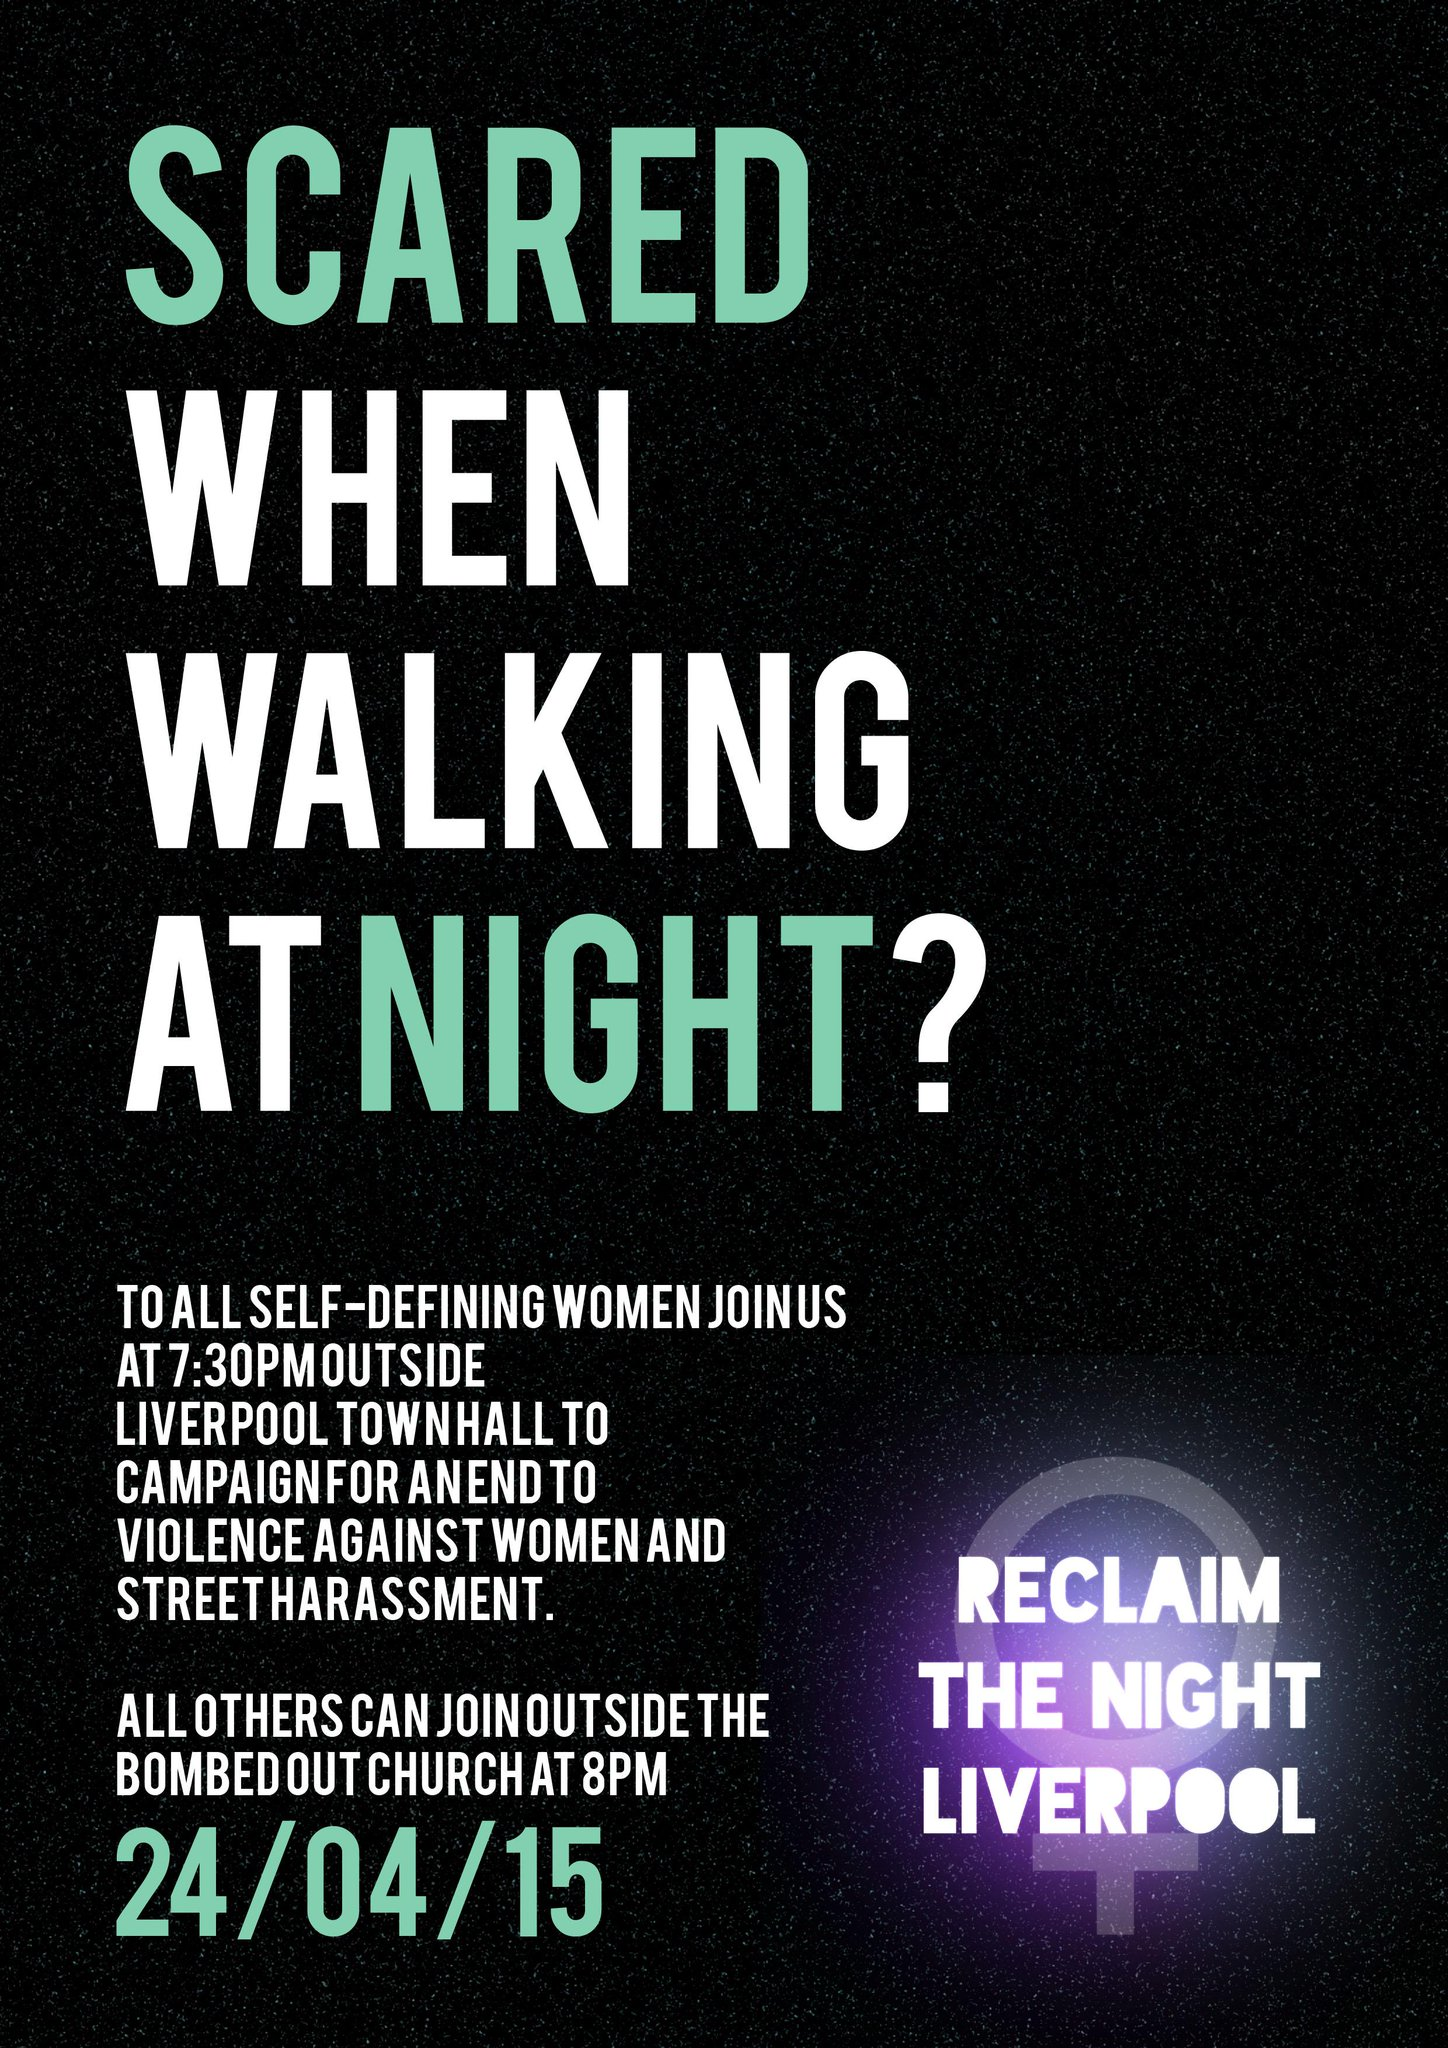 RT @RTNLiverpool: RTN, campaigning for an end to Violence Against Women, challenging street harassment & ending rape culture. Join us. http…